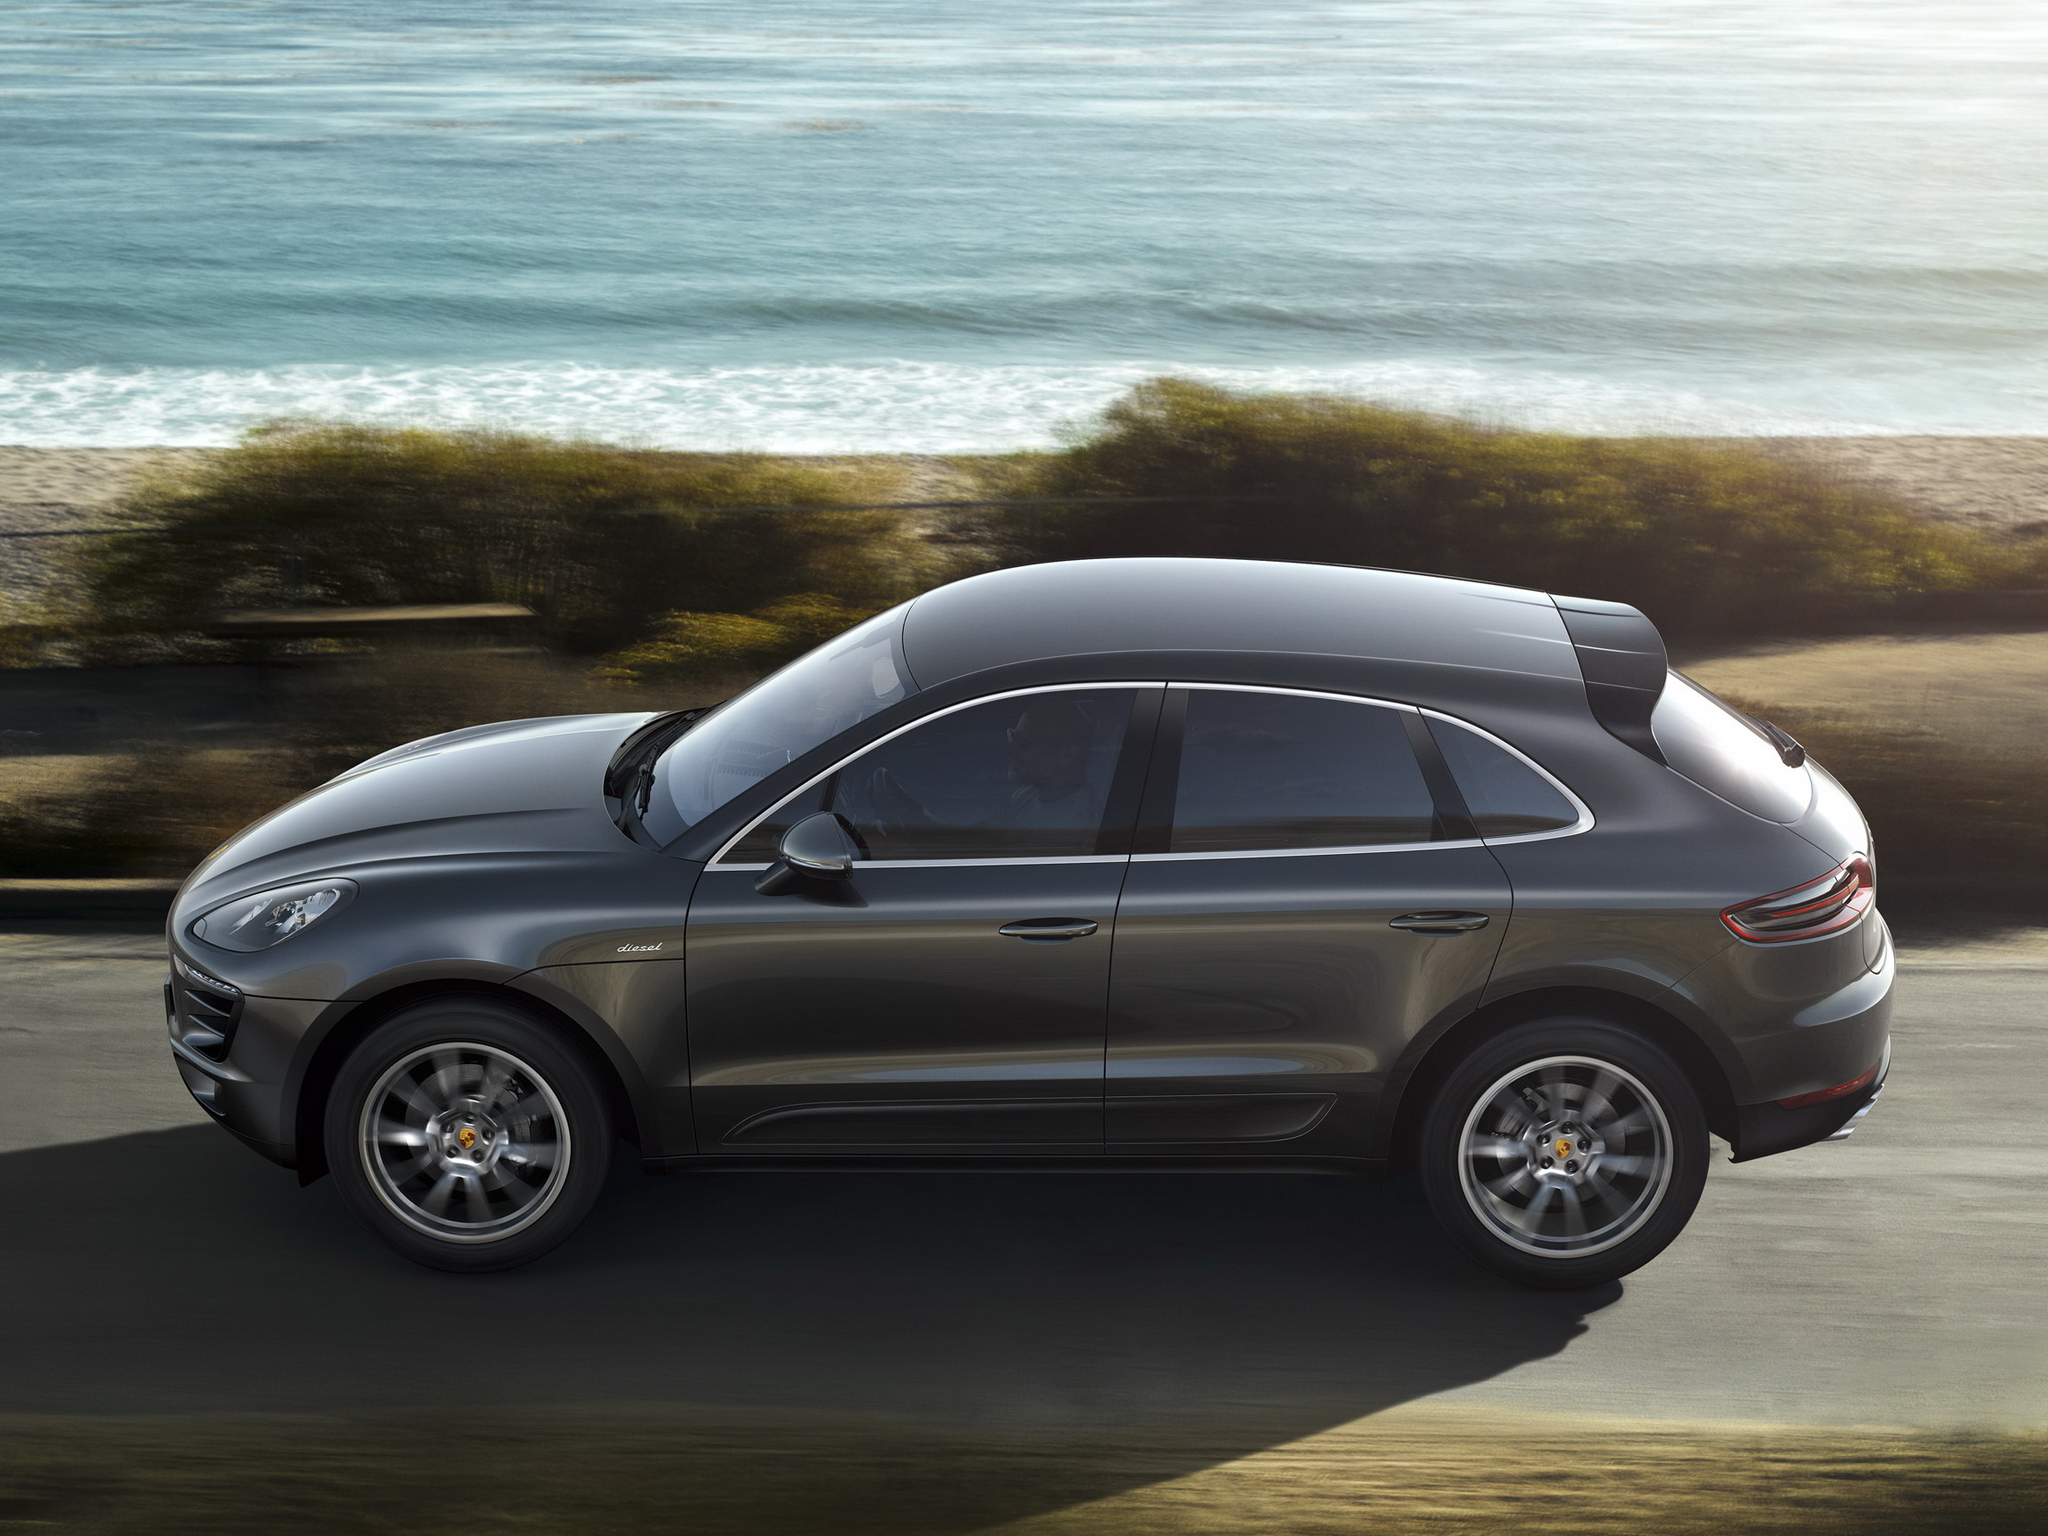 Porsche Macan 5 High Resolution Car Wallpaper